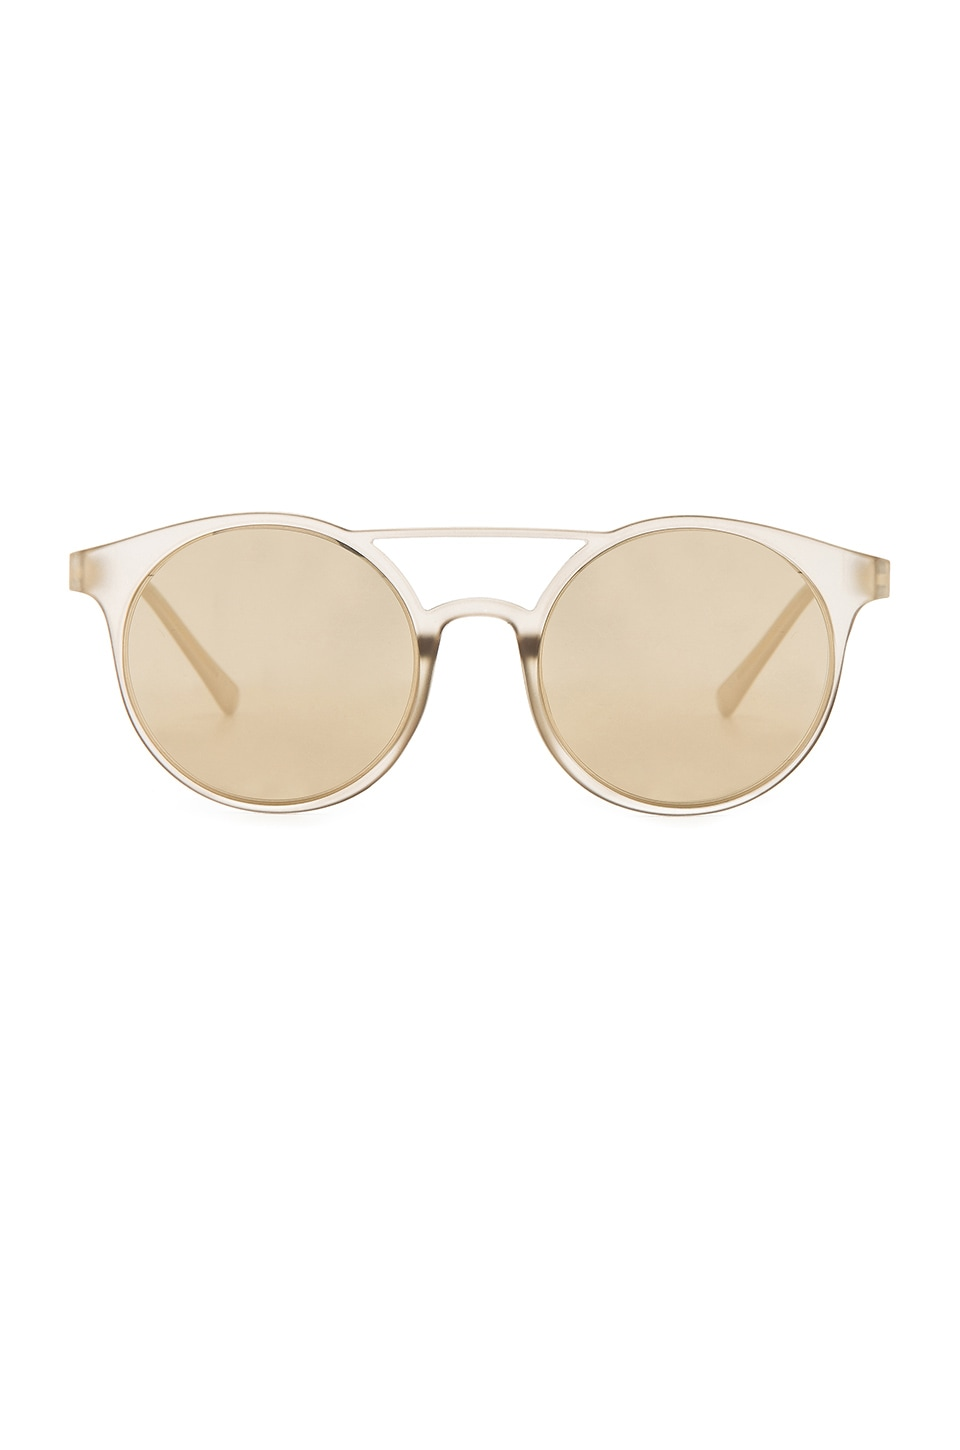 Le Specs Demo Mode Sunglasses in Matte Stone & Gold